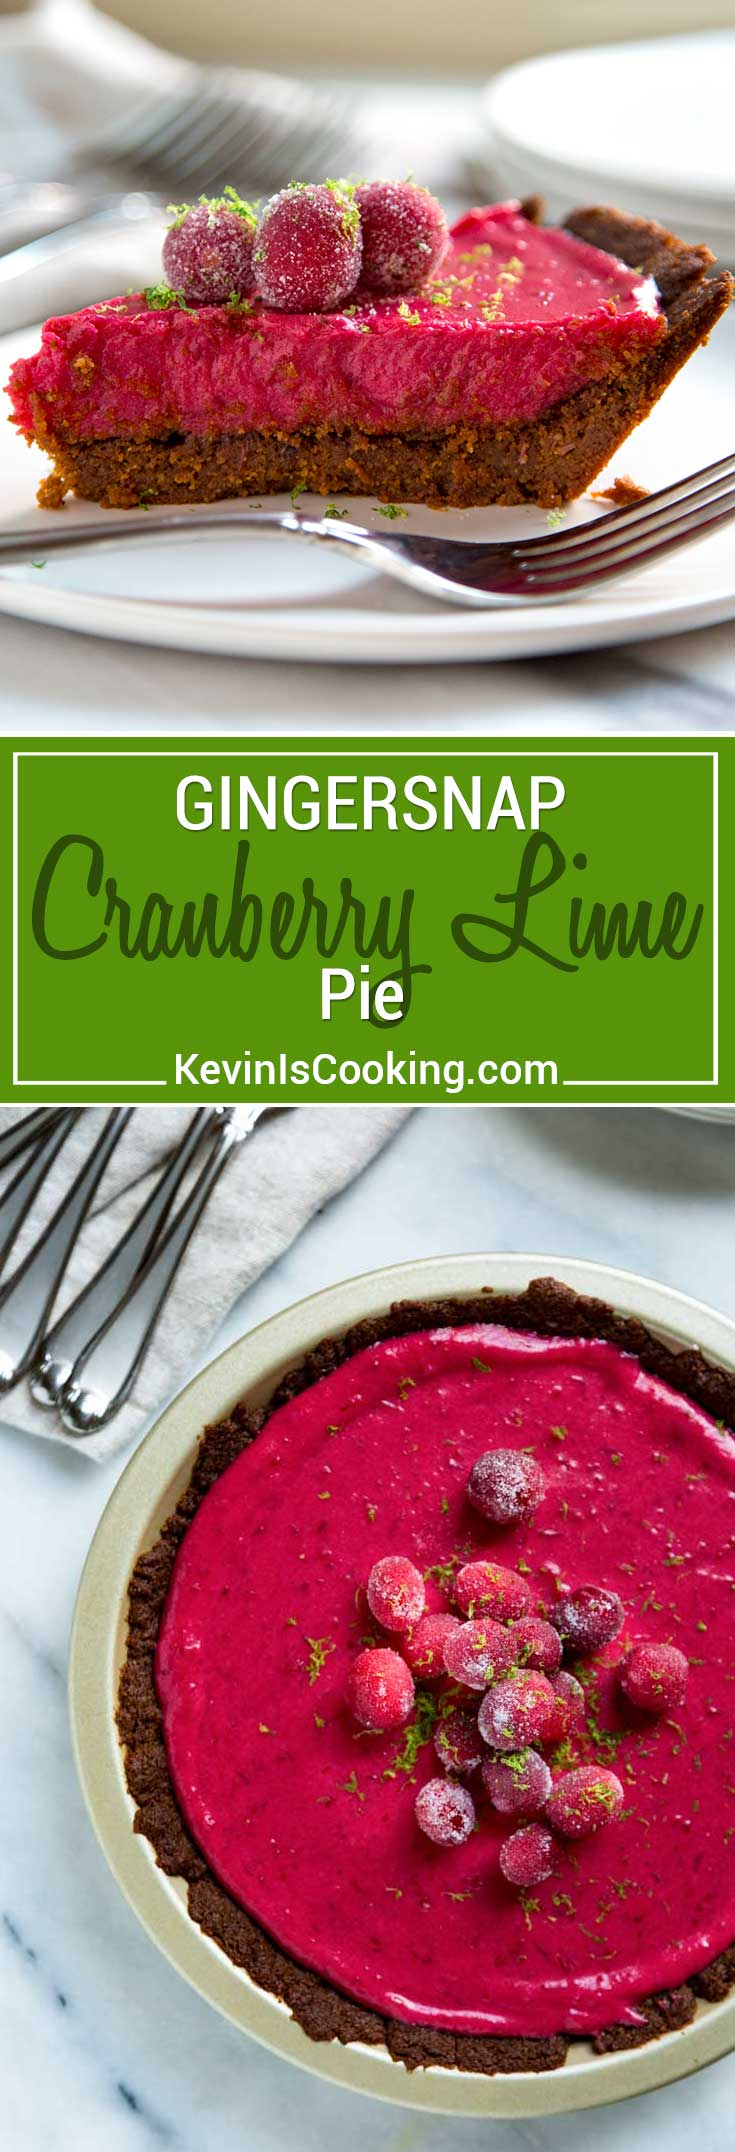 This Cranberry Lime Pie has a gingersnap cookie and walnut crust, a cranberry lime curd that is out of this world and topped with candied cranberries. Wow!